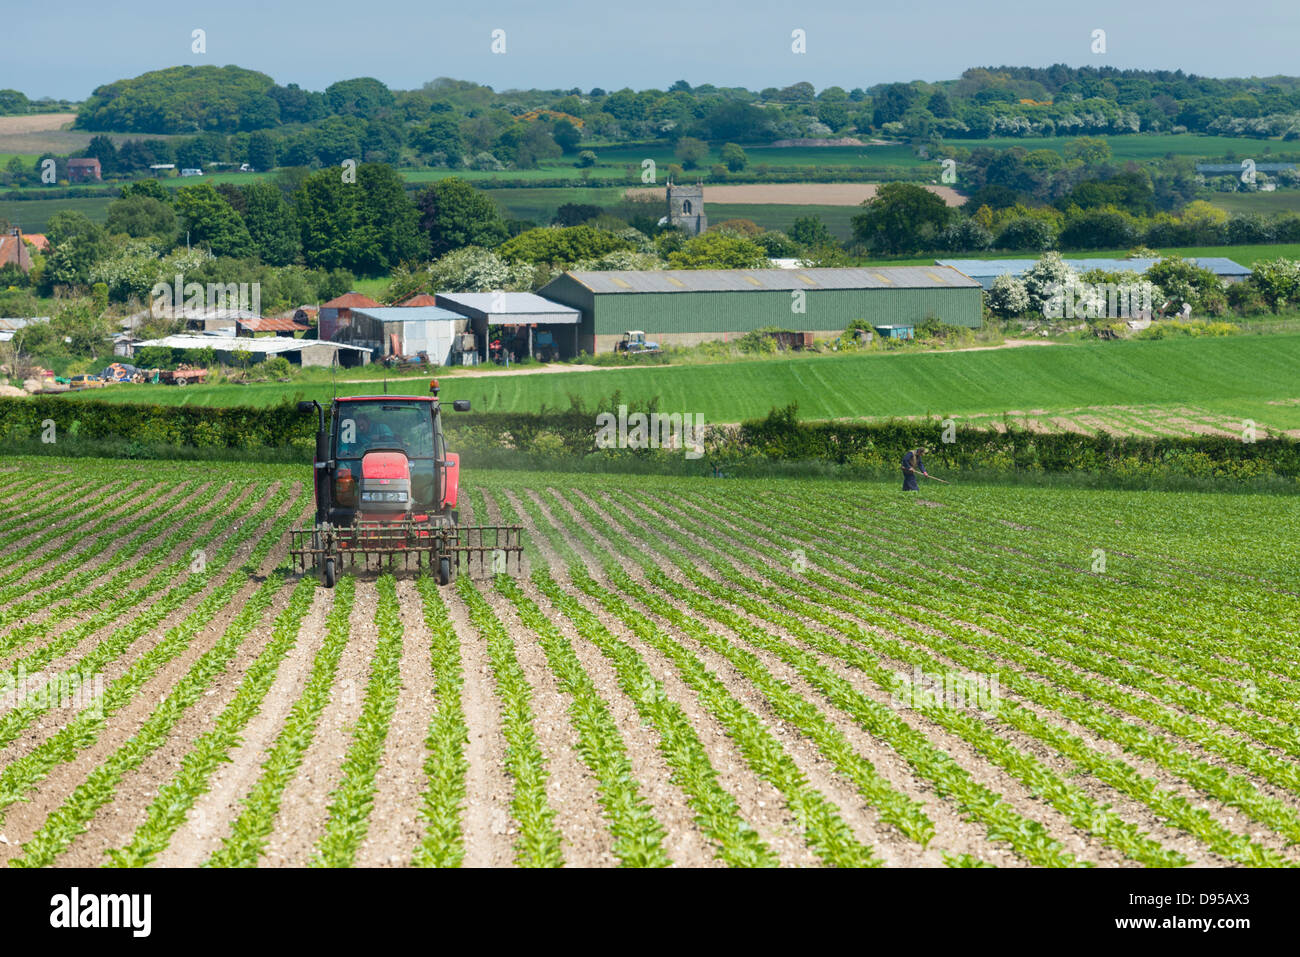 Tractor hoeing sugarbeet with a front mounted hoe, showing surrounding countryside, church, and farm buildings, - Stock Image